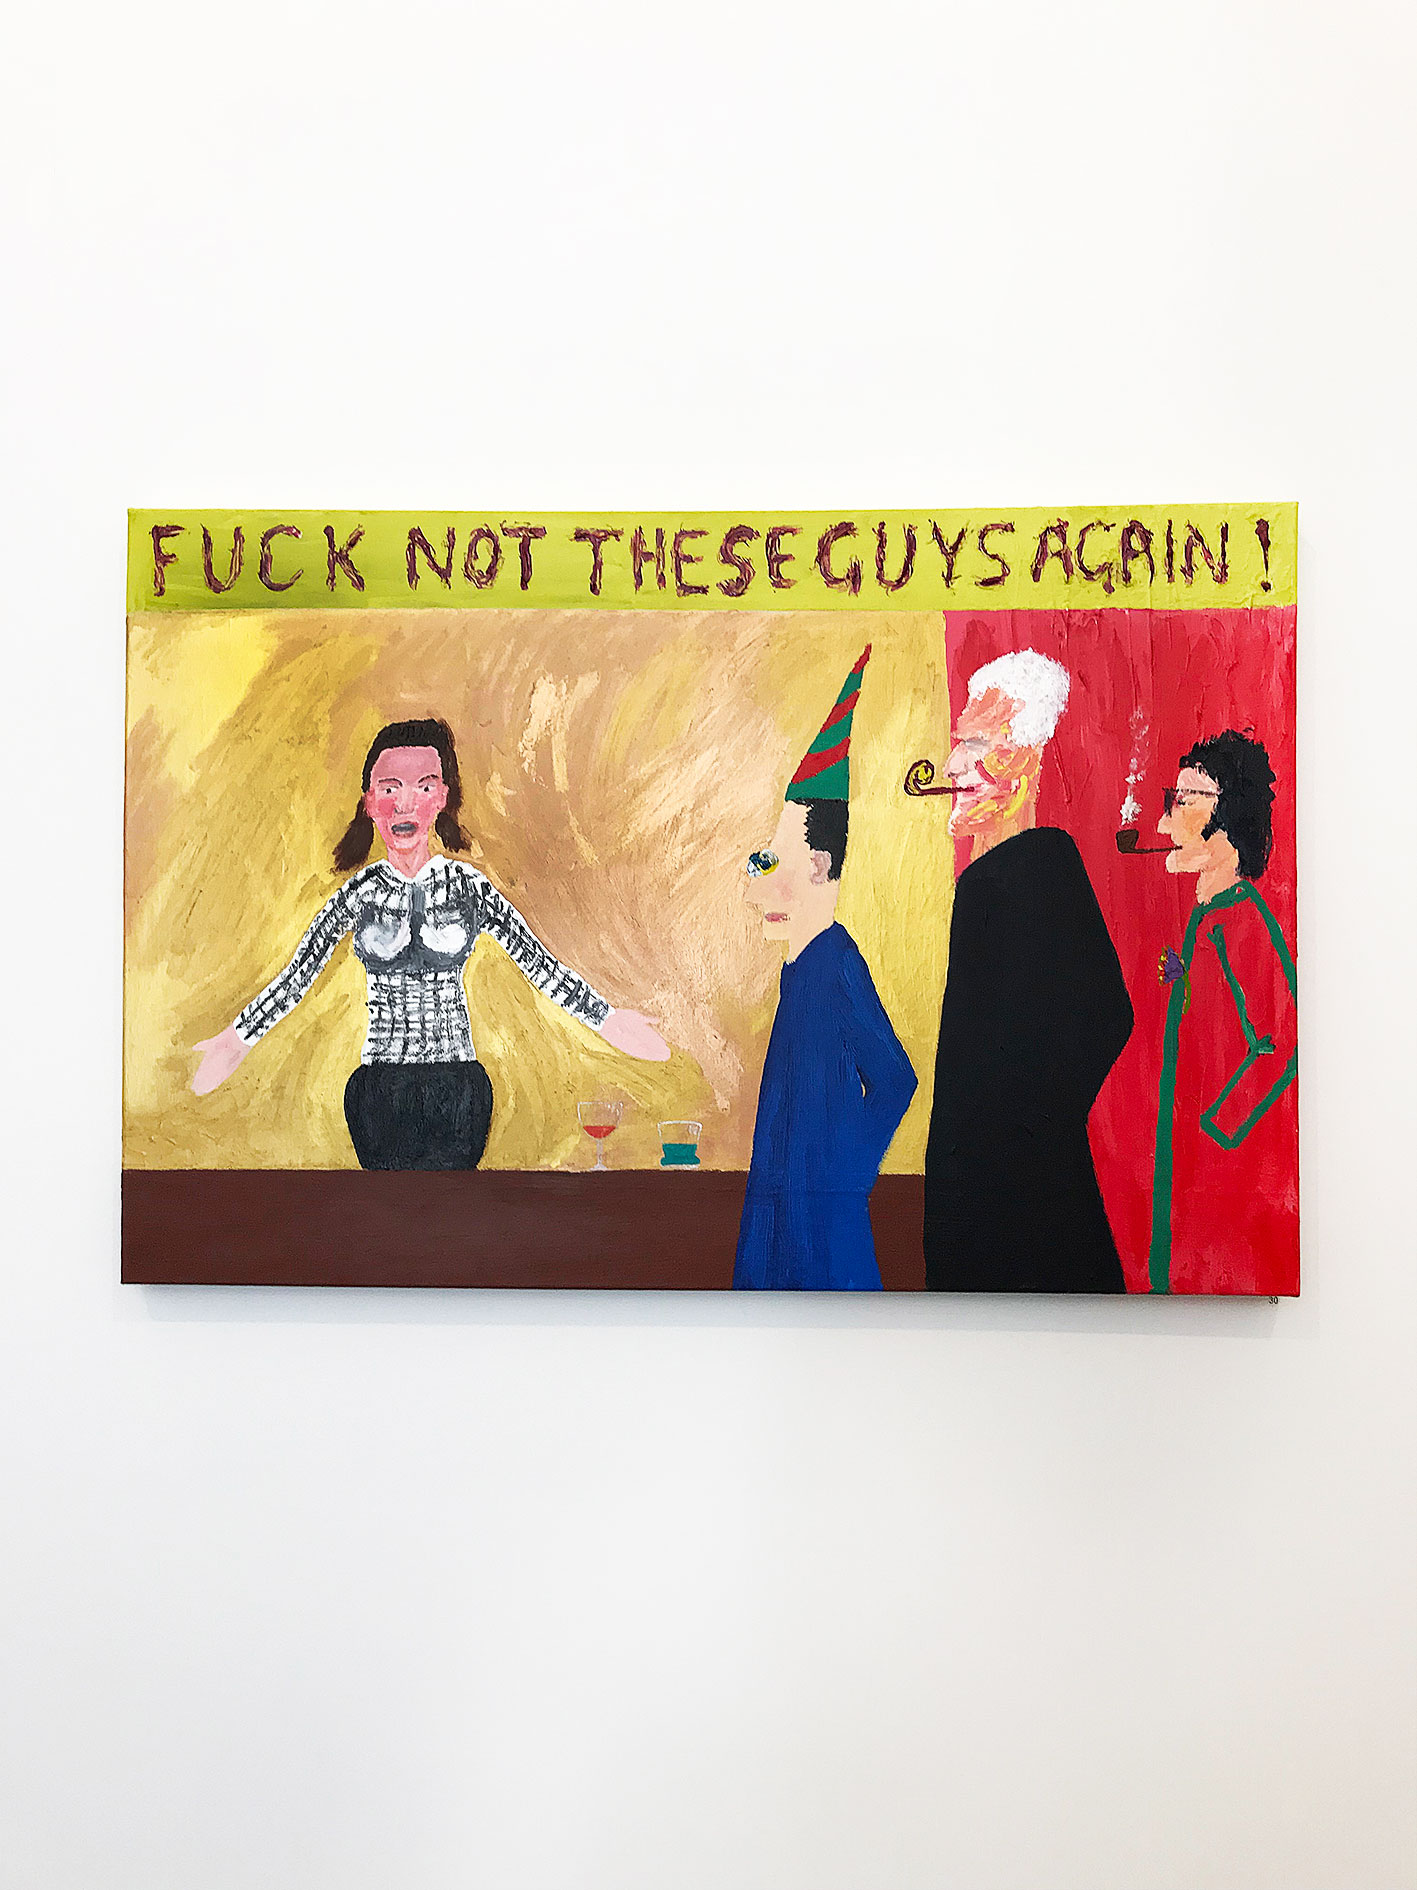 (30) Fuck Not These Guys Again! acrylic on canvas 60.96 x 76.2 cm 2016